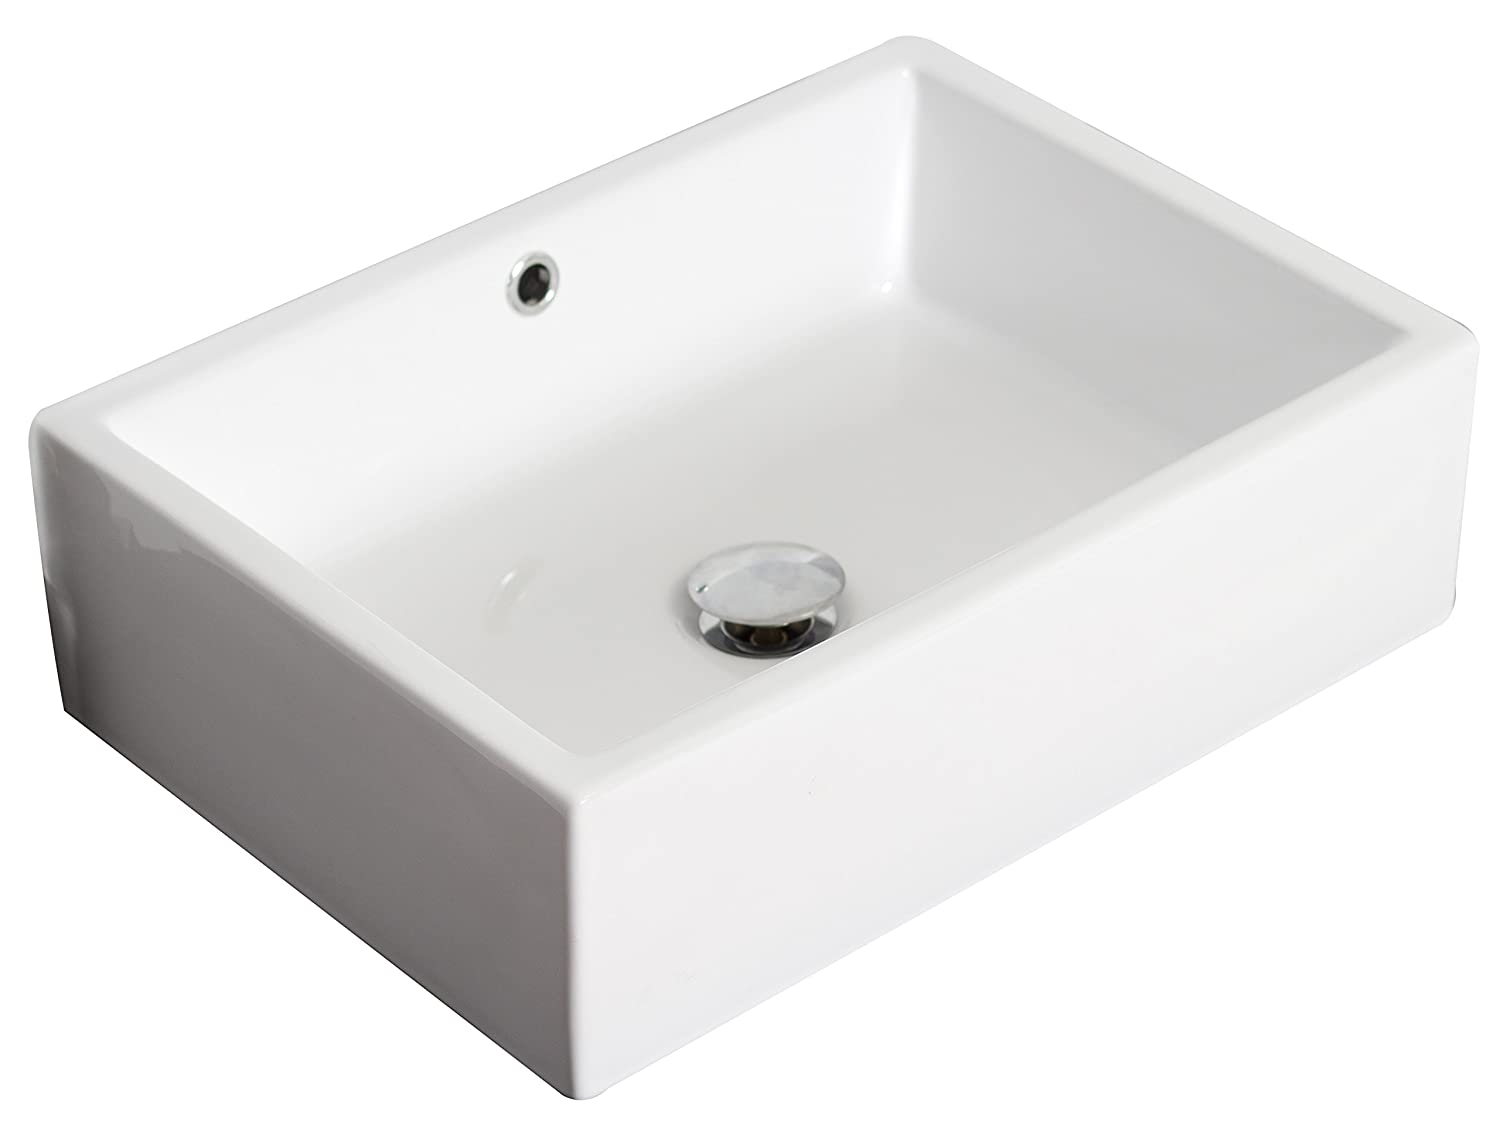 American Imaginations AI-4-1299 Above Counter Rectangle Vessel for Deck/Wall Mount Faucet, 20-Inch x 14-Inch, White IMG Imports Inc.